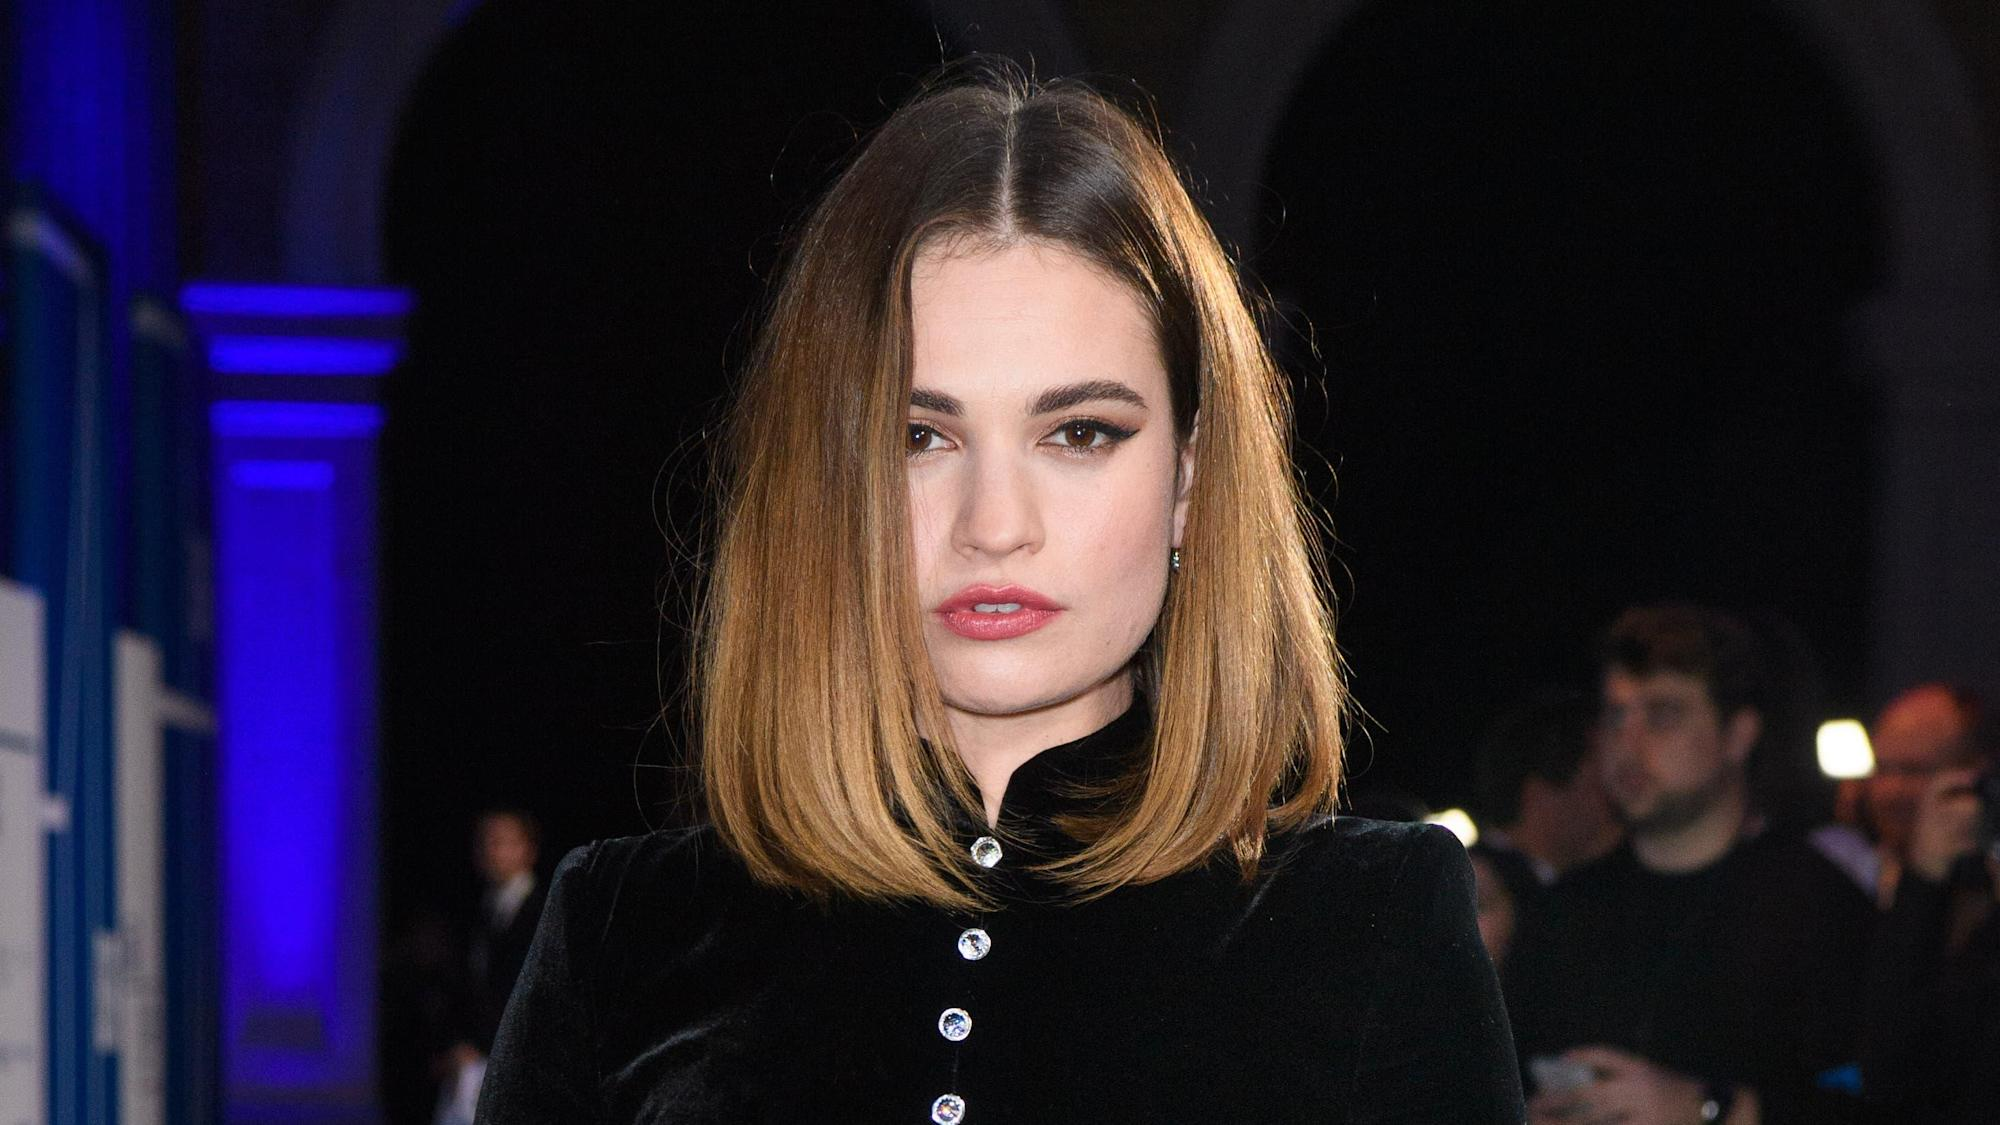 Lily James transforms into Pamela Anderson for new TV series